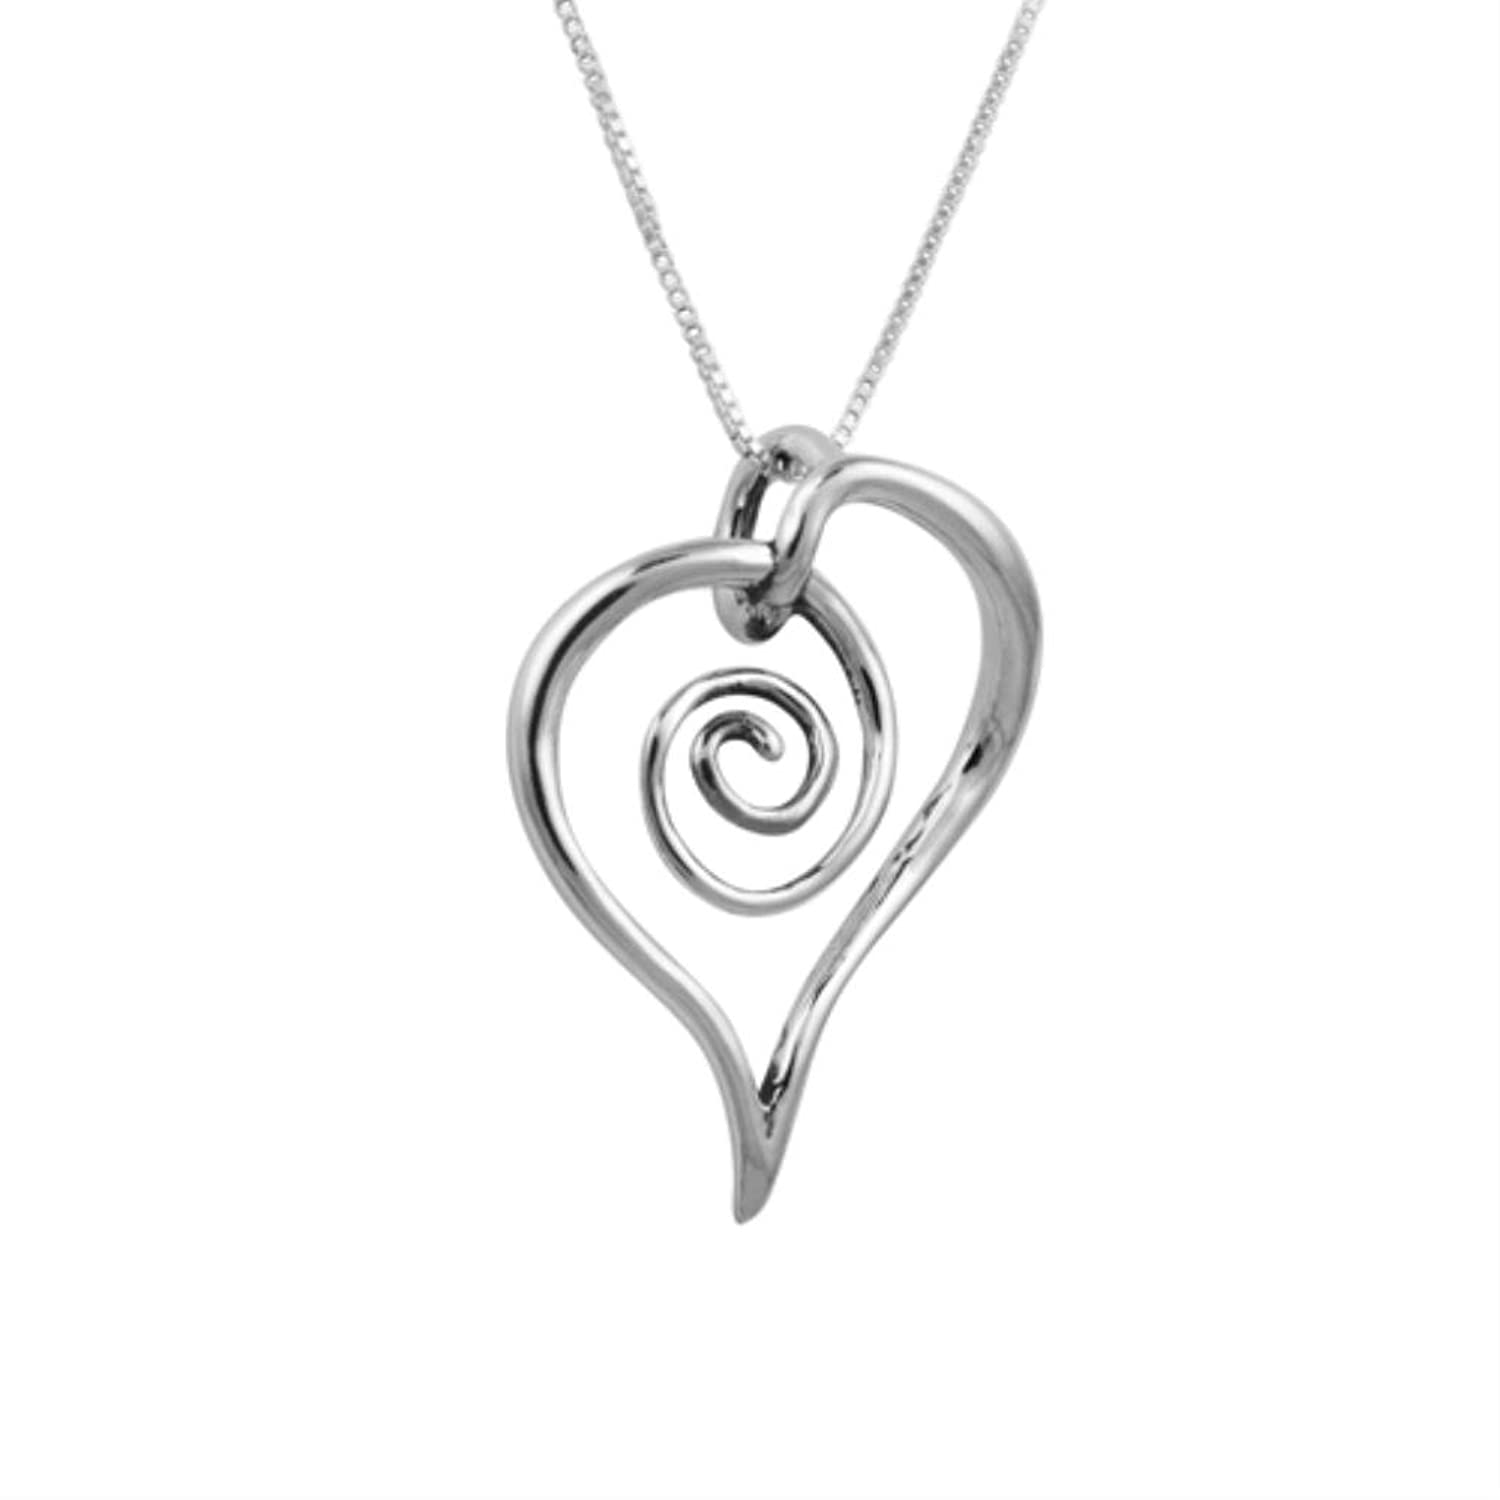 Amazon.com: Sterling Silver Freeform Spiral Heart Pendant Necklace ...